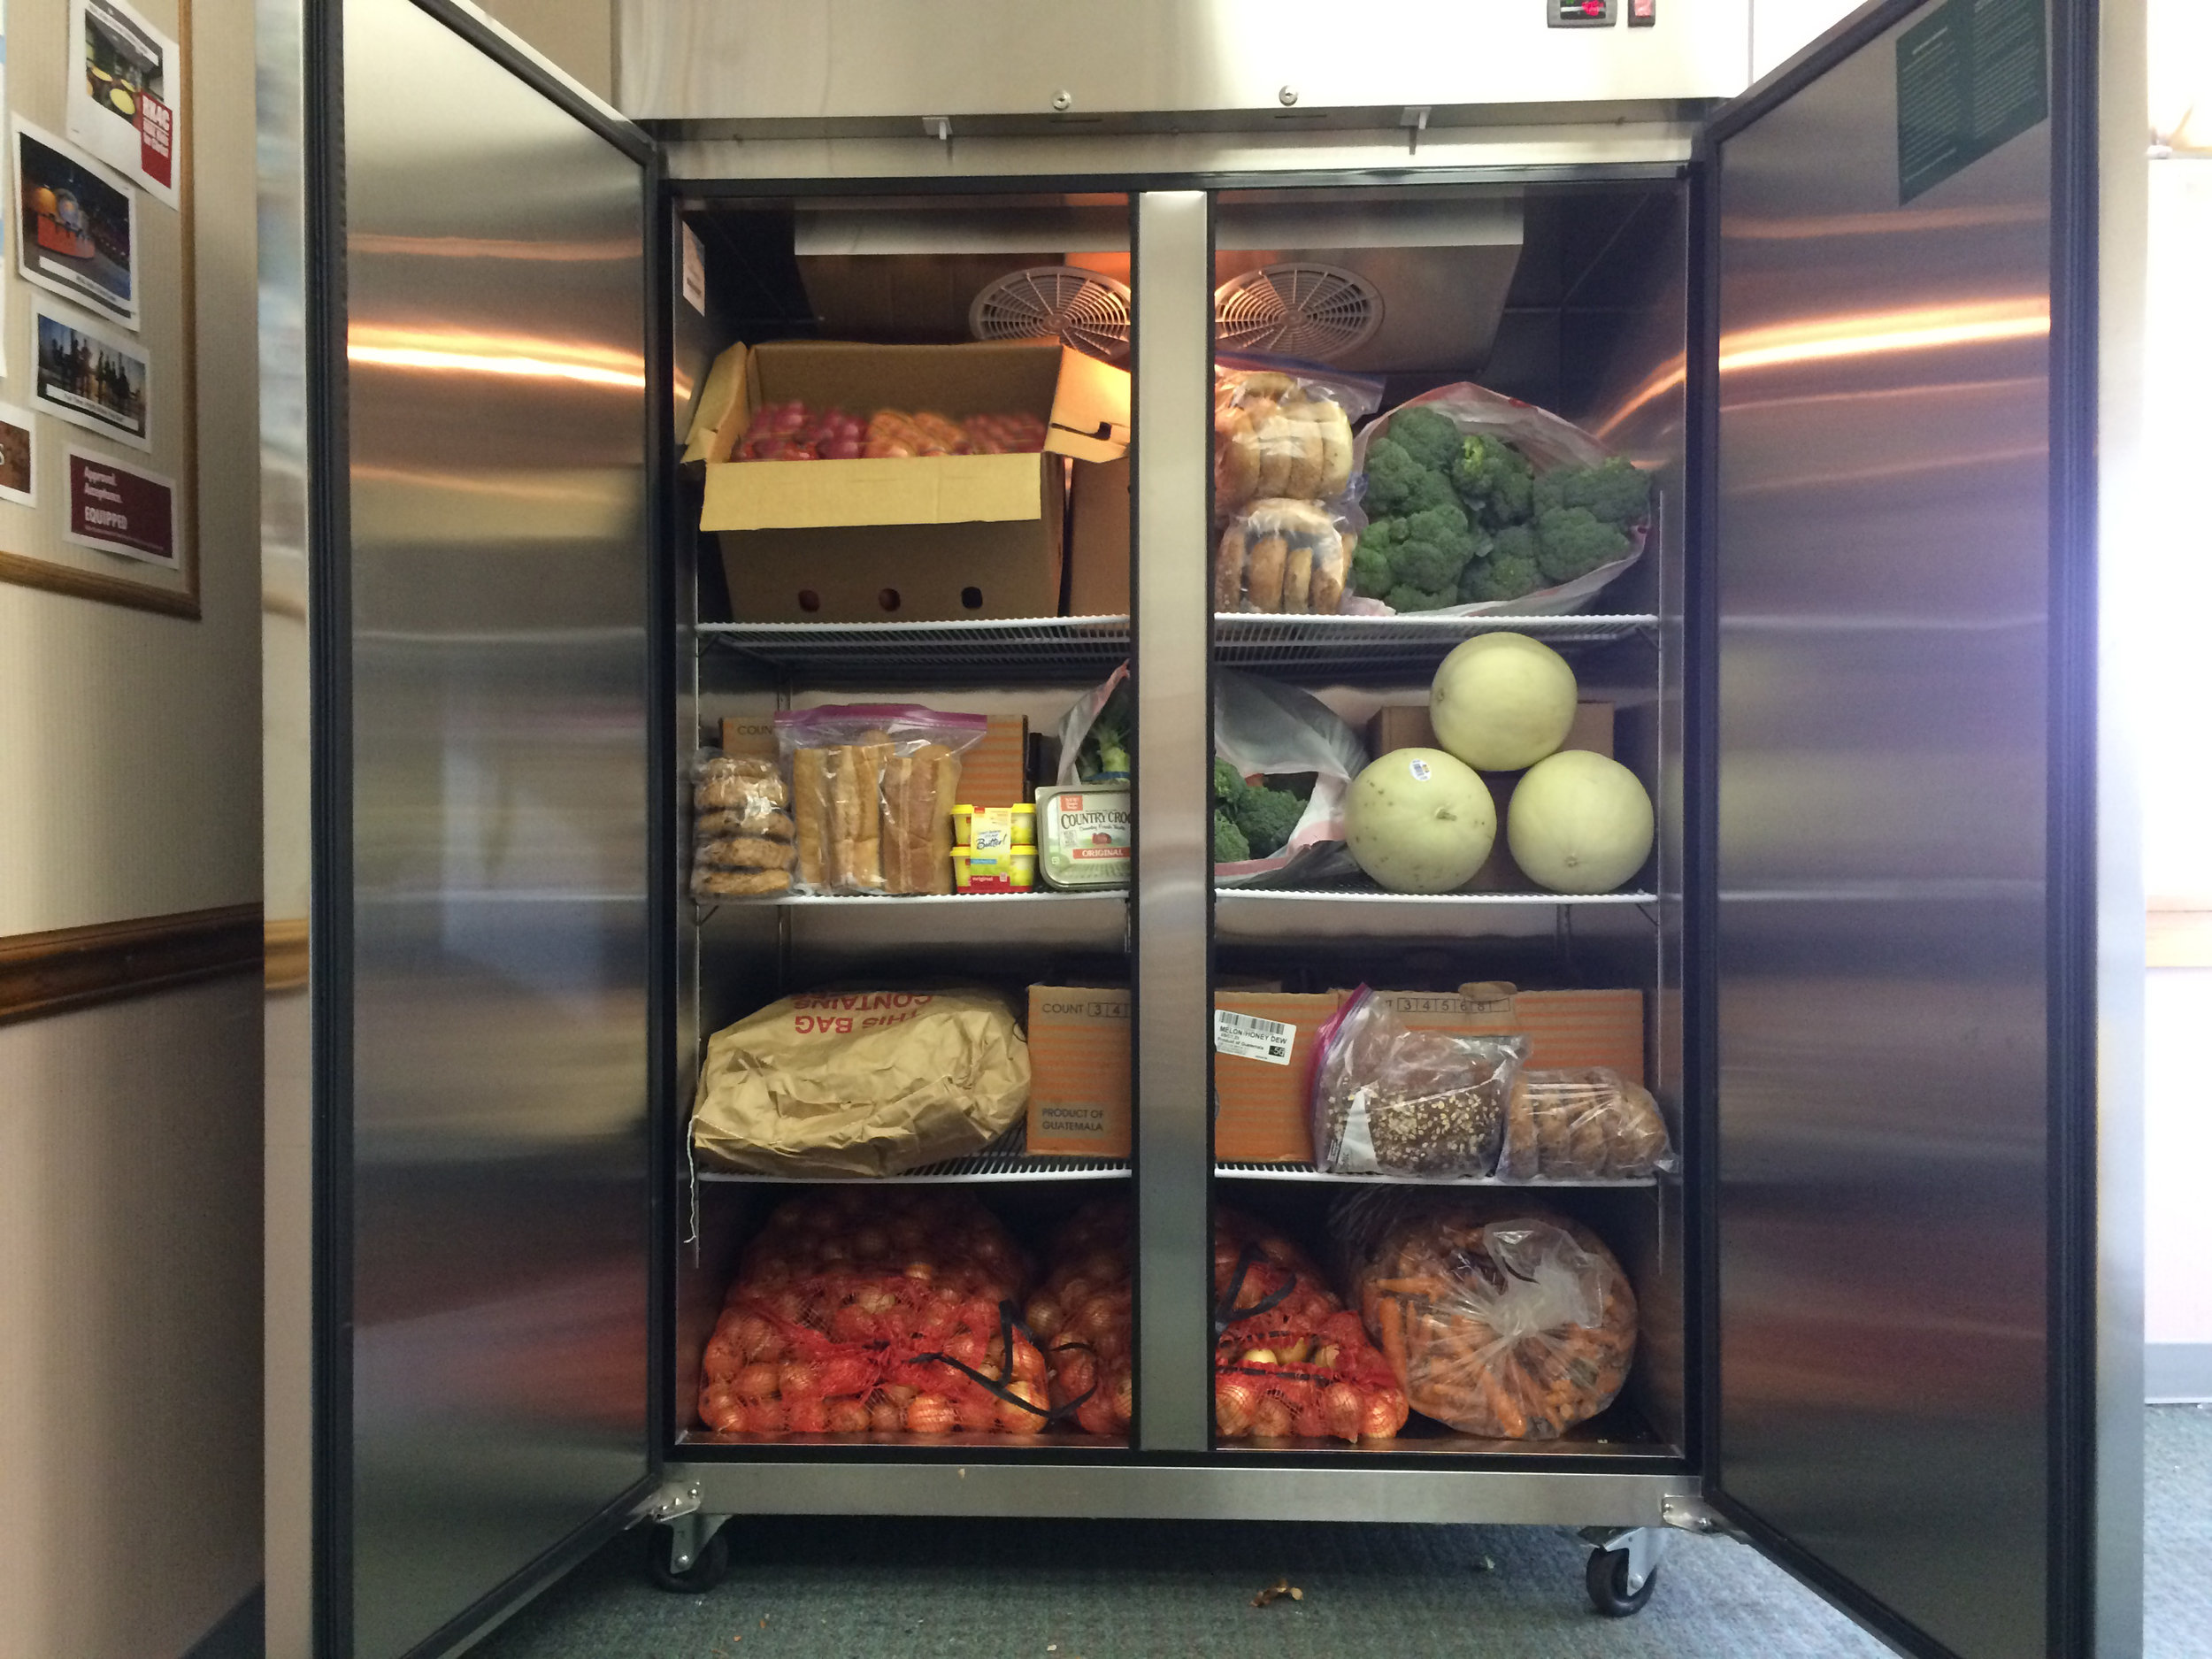 The South Jersey Dream Center received a $1,000 mini grant from the United Way of Gloucester County to purchase a commercial refrigerator.